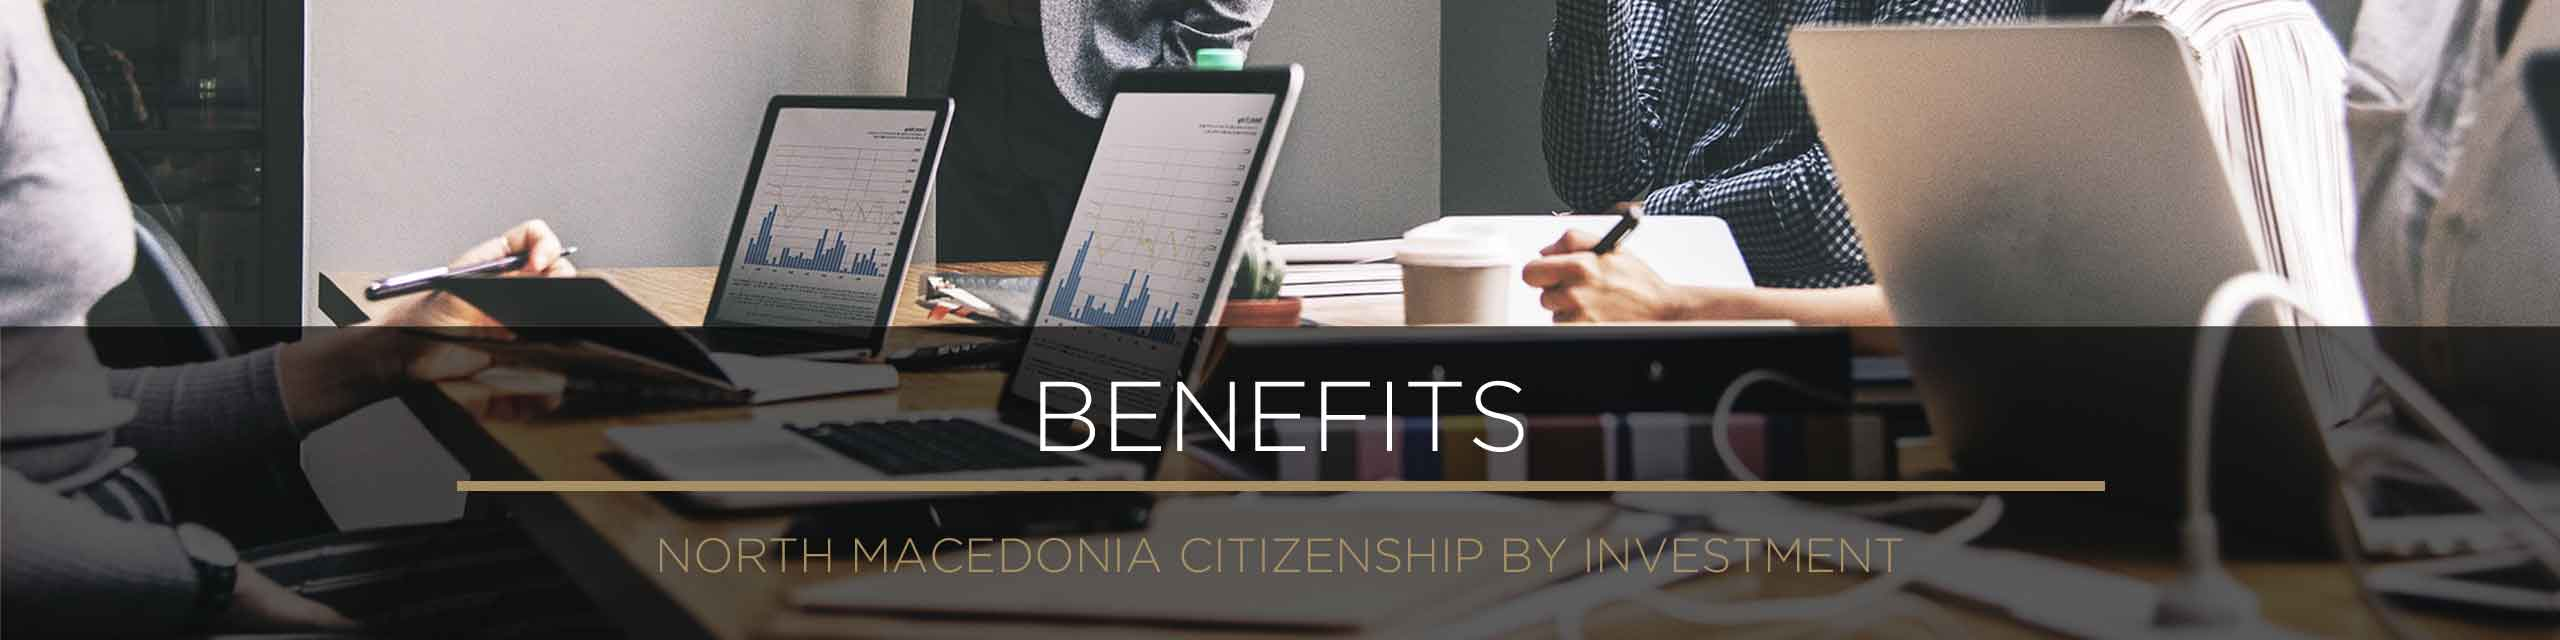 North Macedonia - What is Citizenship? - Benefits